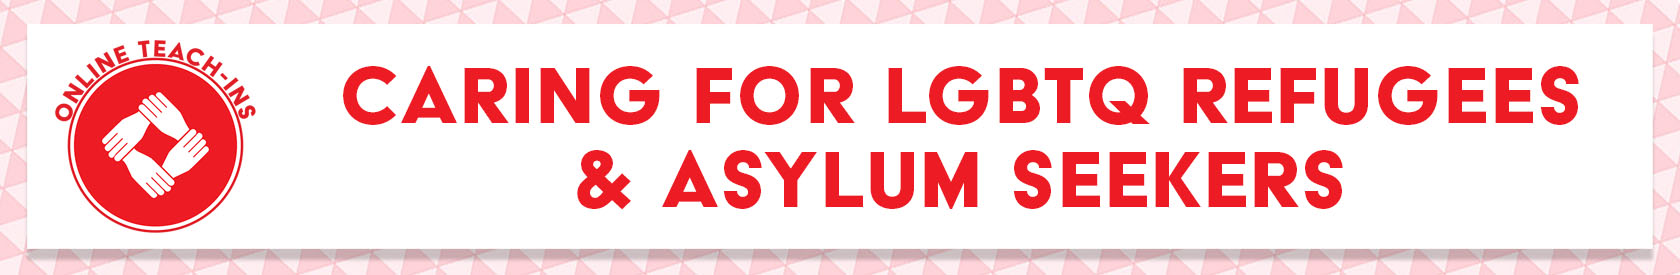 Caring for LGBTQ Refugees and Asylum Seekers, Part 2